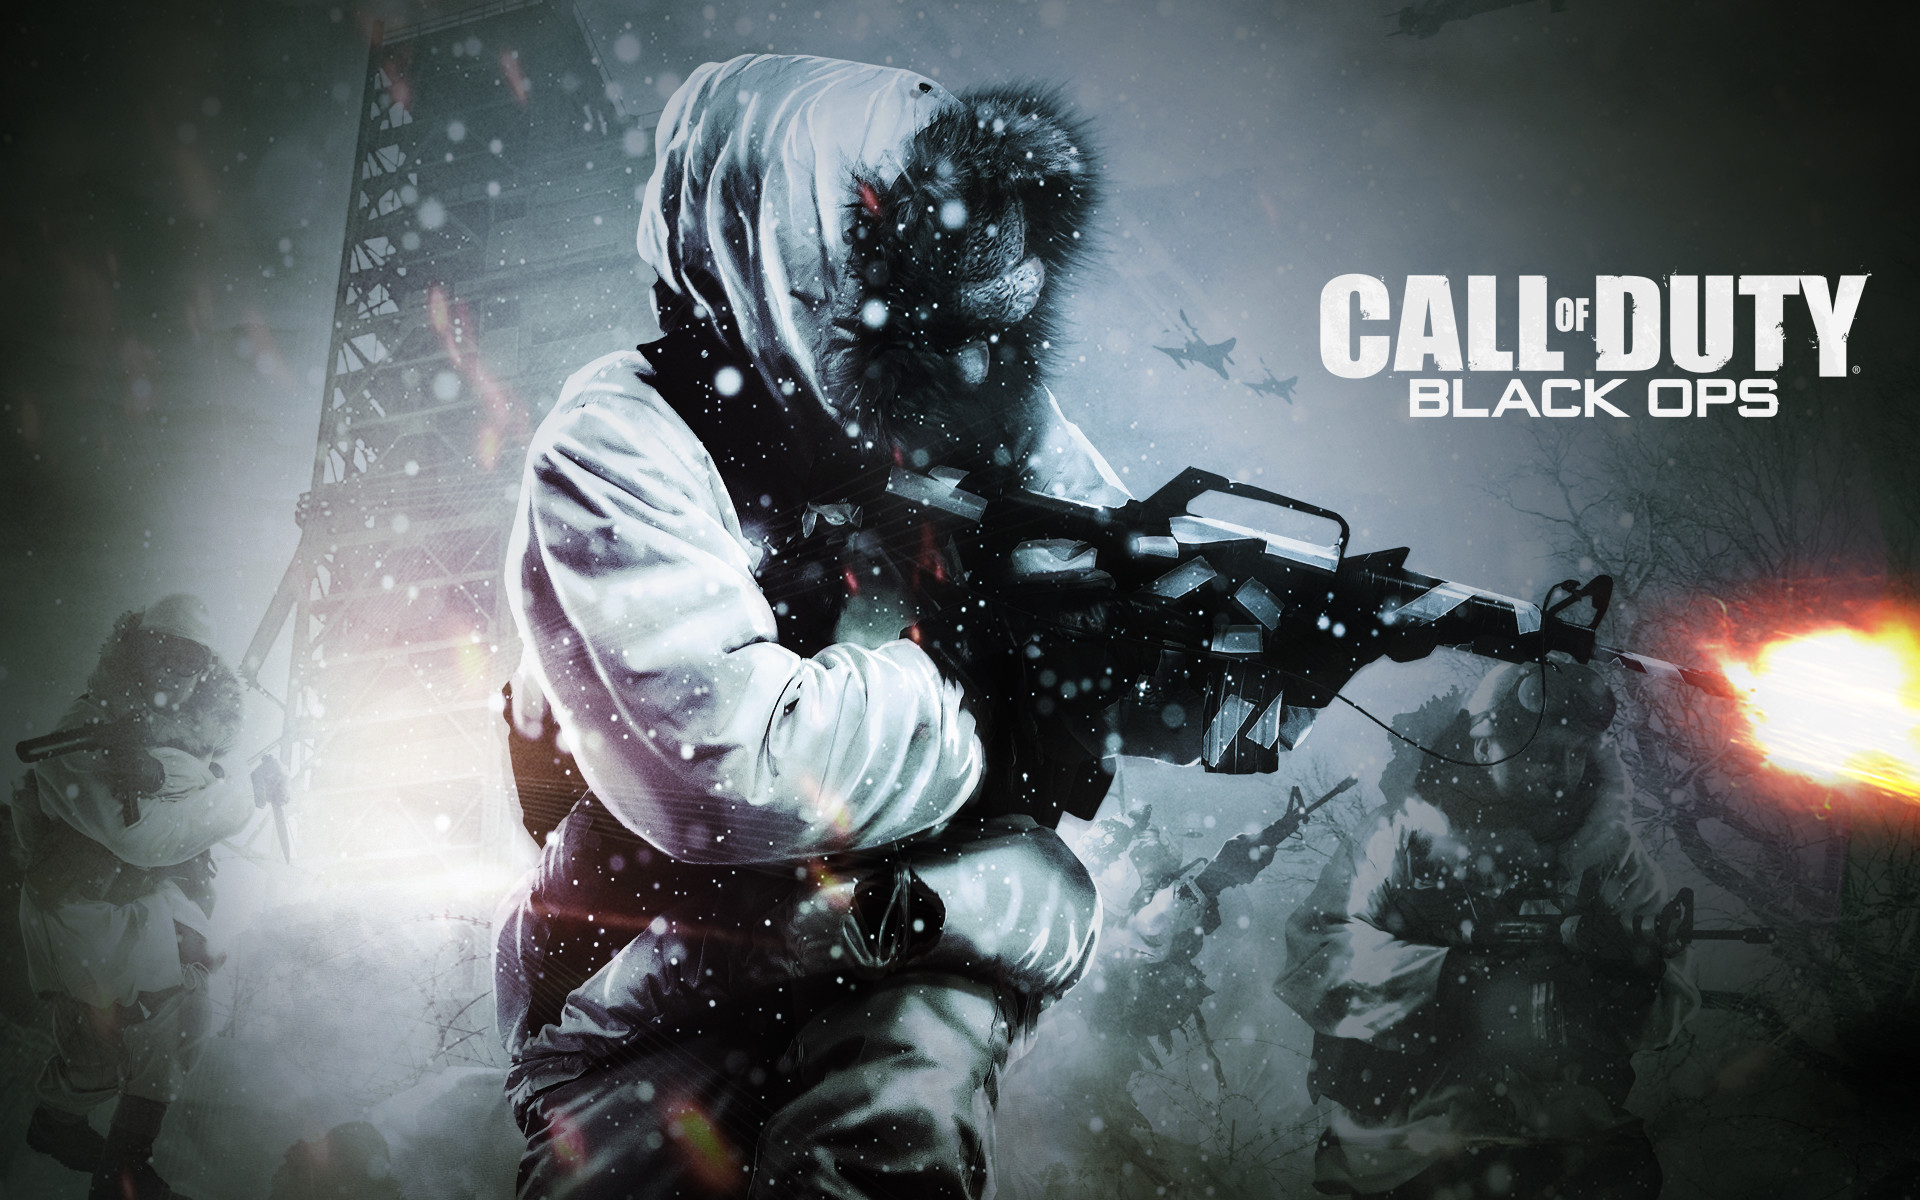 Call of Duty Black Ops wallpaper 1920×1080 Call Of Duty Black Ops 1  Wallpapers (31 Wallpapers) | Adorable Wallpapers | Wallpapers | Pinterest |  Black ops …